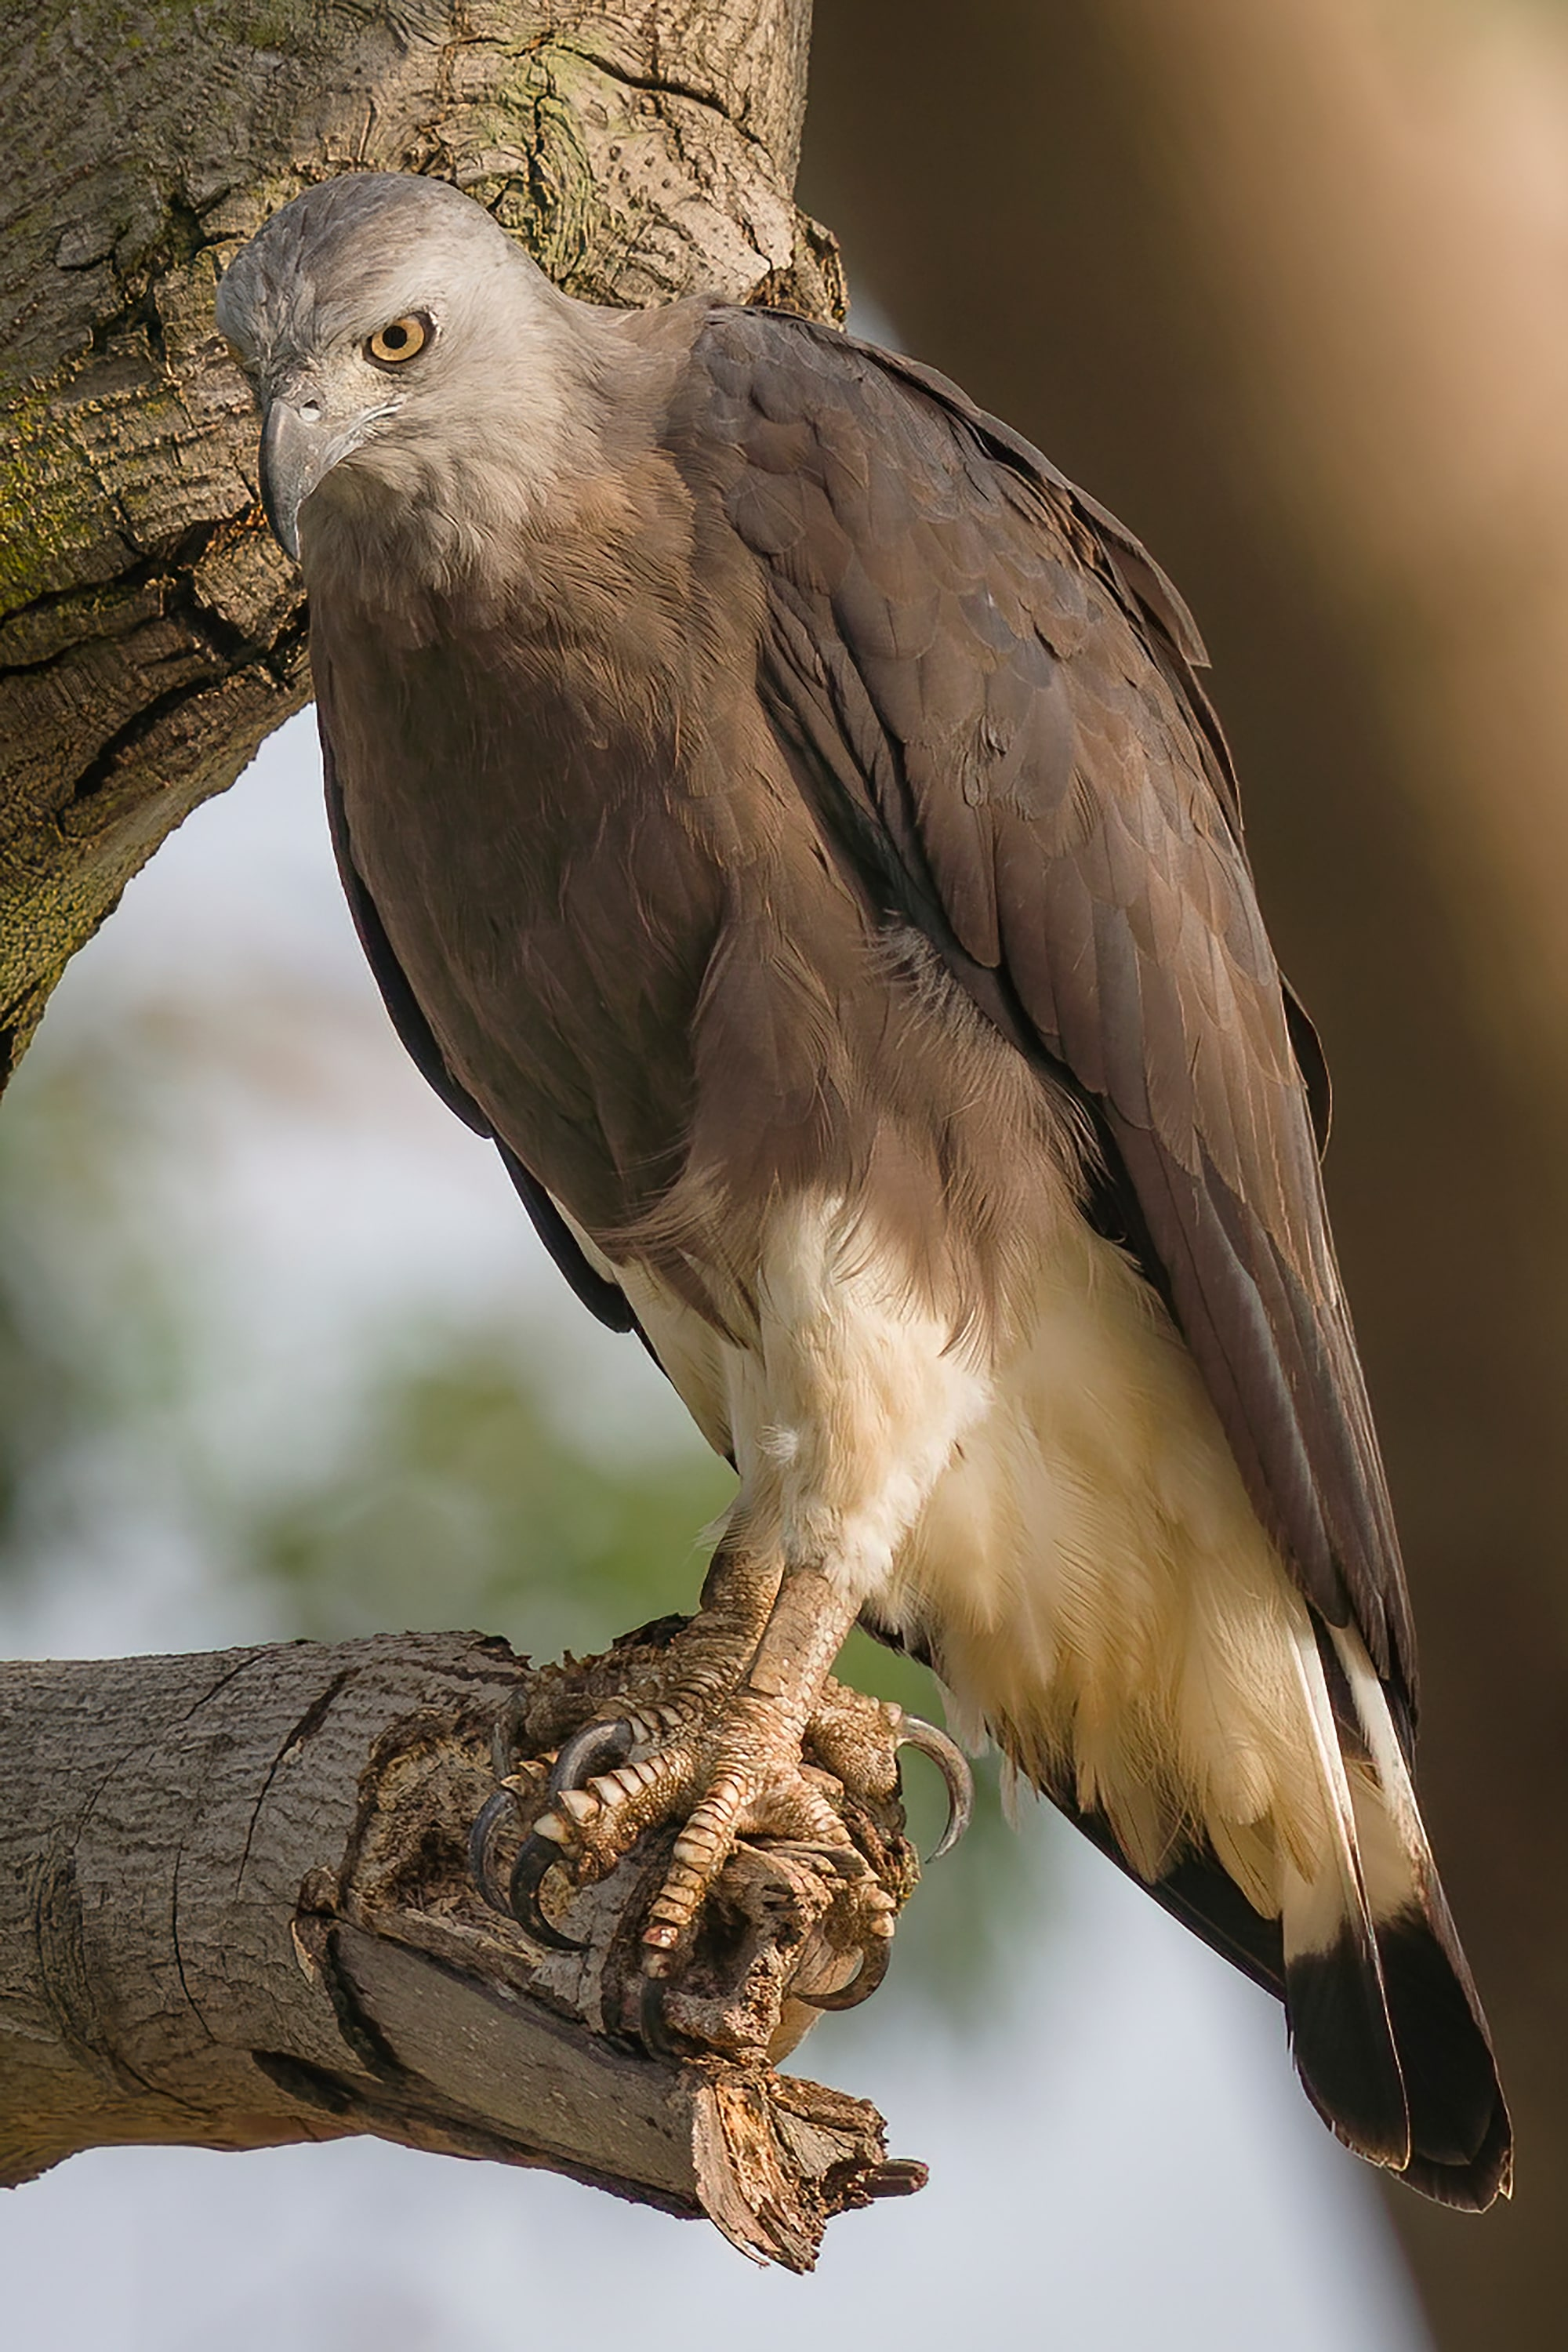 Sony Alpha 7R IV's 61 megapixels retain high resolution even after approx. 2.7x crop of Grey-Headed Fish Eagle on branch.